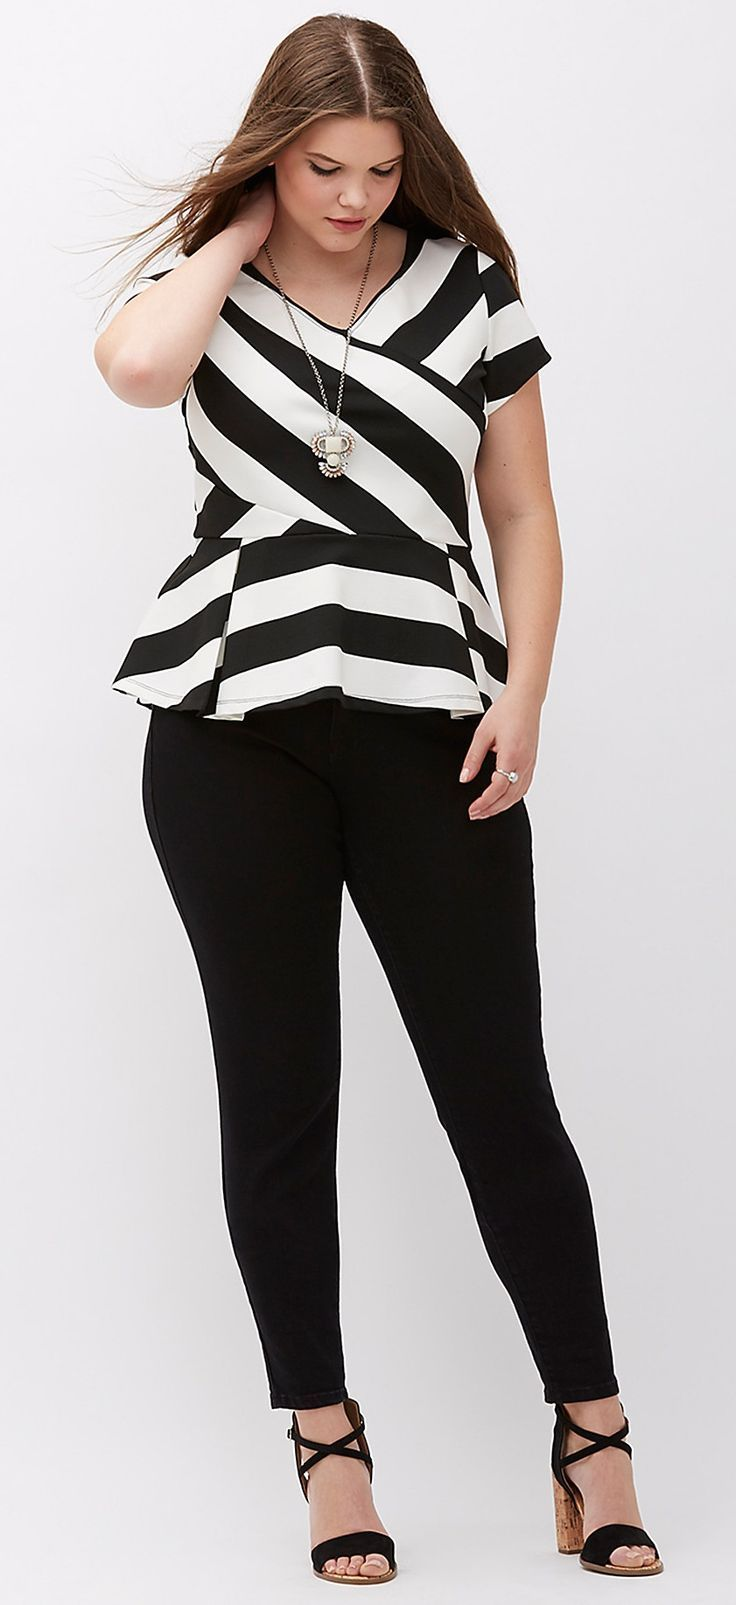 cool Lane Bryant - Lane Bryant Striped Peplum Top by www.globalfashion...